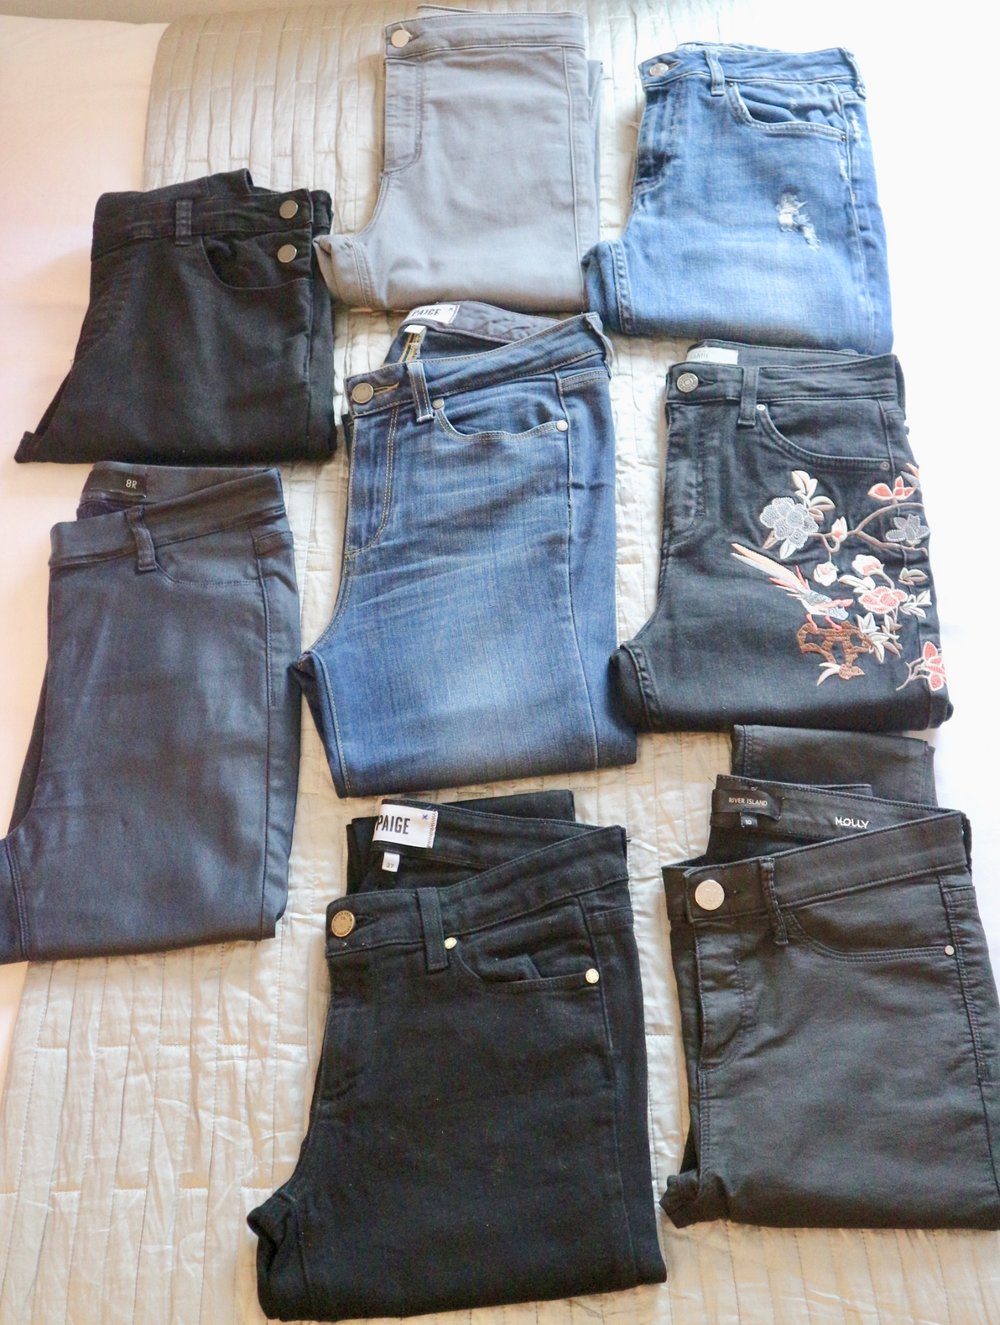 (Left) Black Dungarees (Flea Market Buy) and Navy Next Pleather Jeggings  (Centre) Grey Topshop Joni Jeans, Blue Paige Jeans, Black Paige Jeans  (Right) Blue Topshop Boyfriend Jeans, Black Embroidered Topshop Jeans, Black Molly Coated River Island Jeans